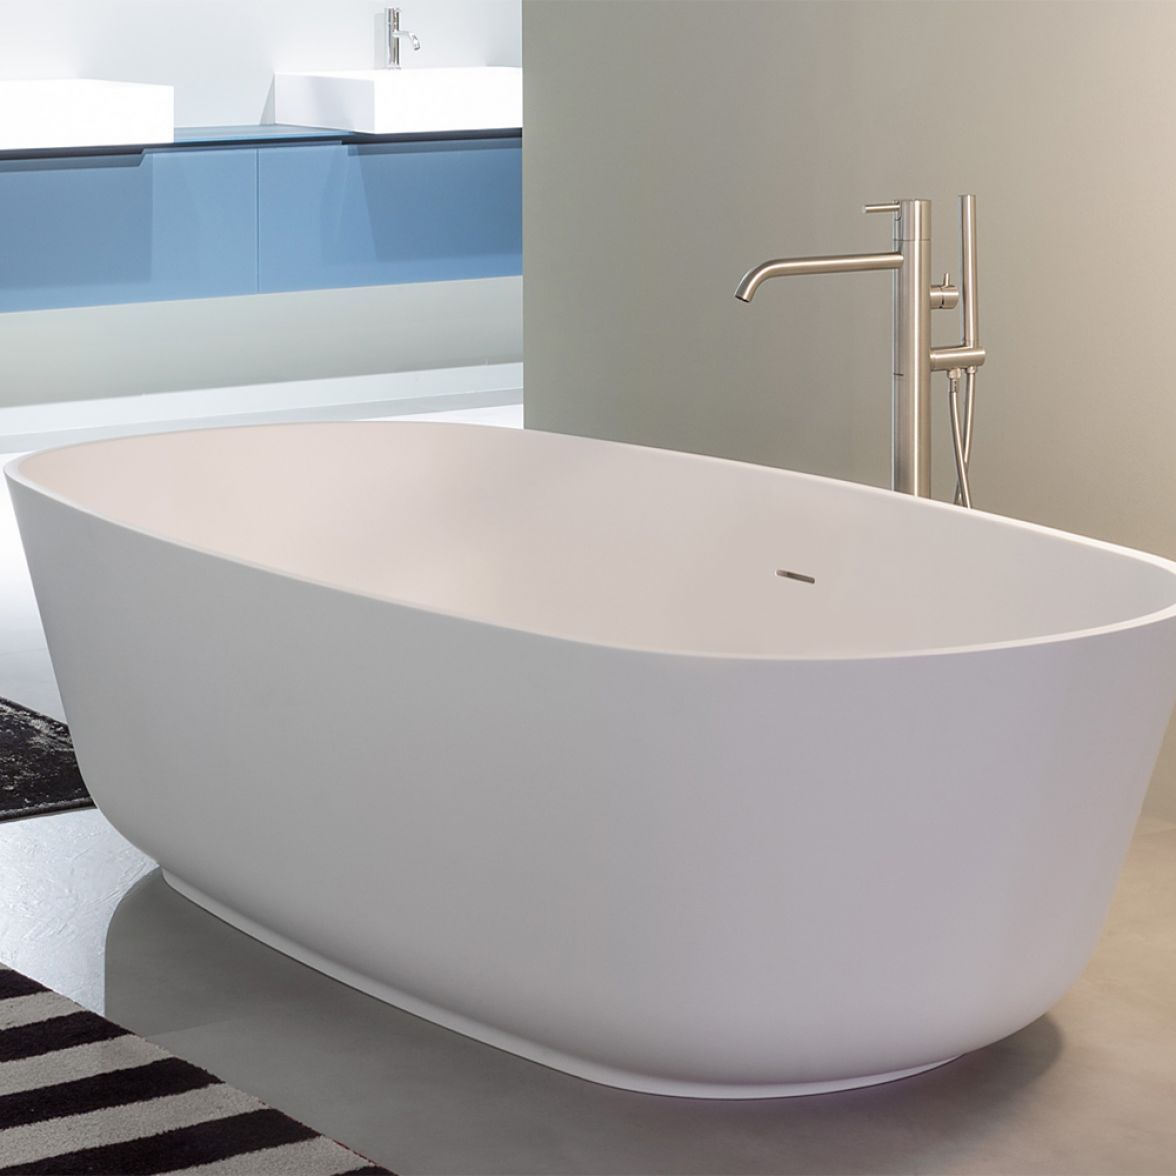 Baia Bathtub фото цена